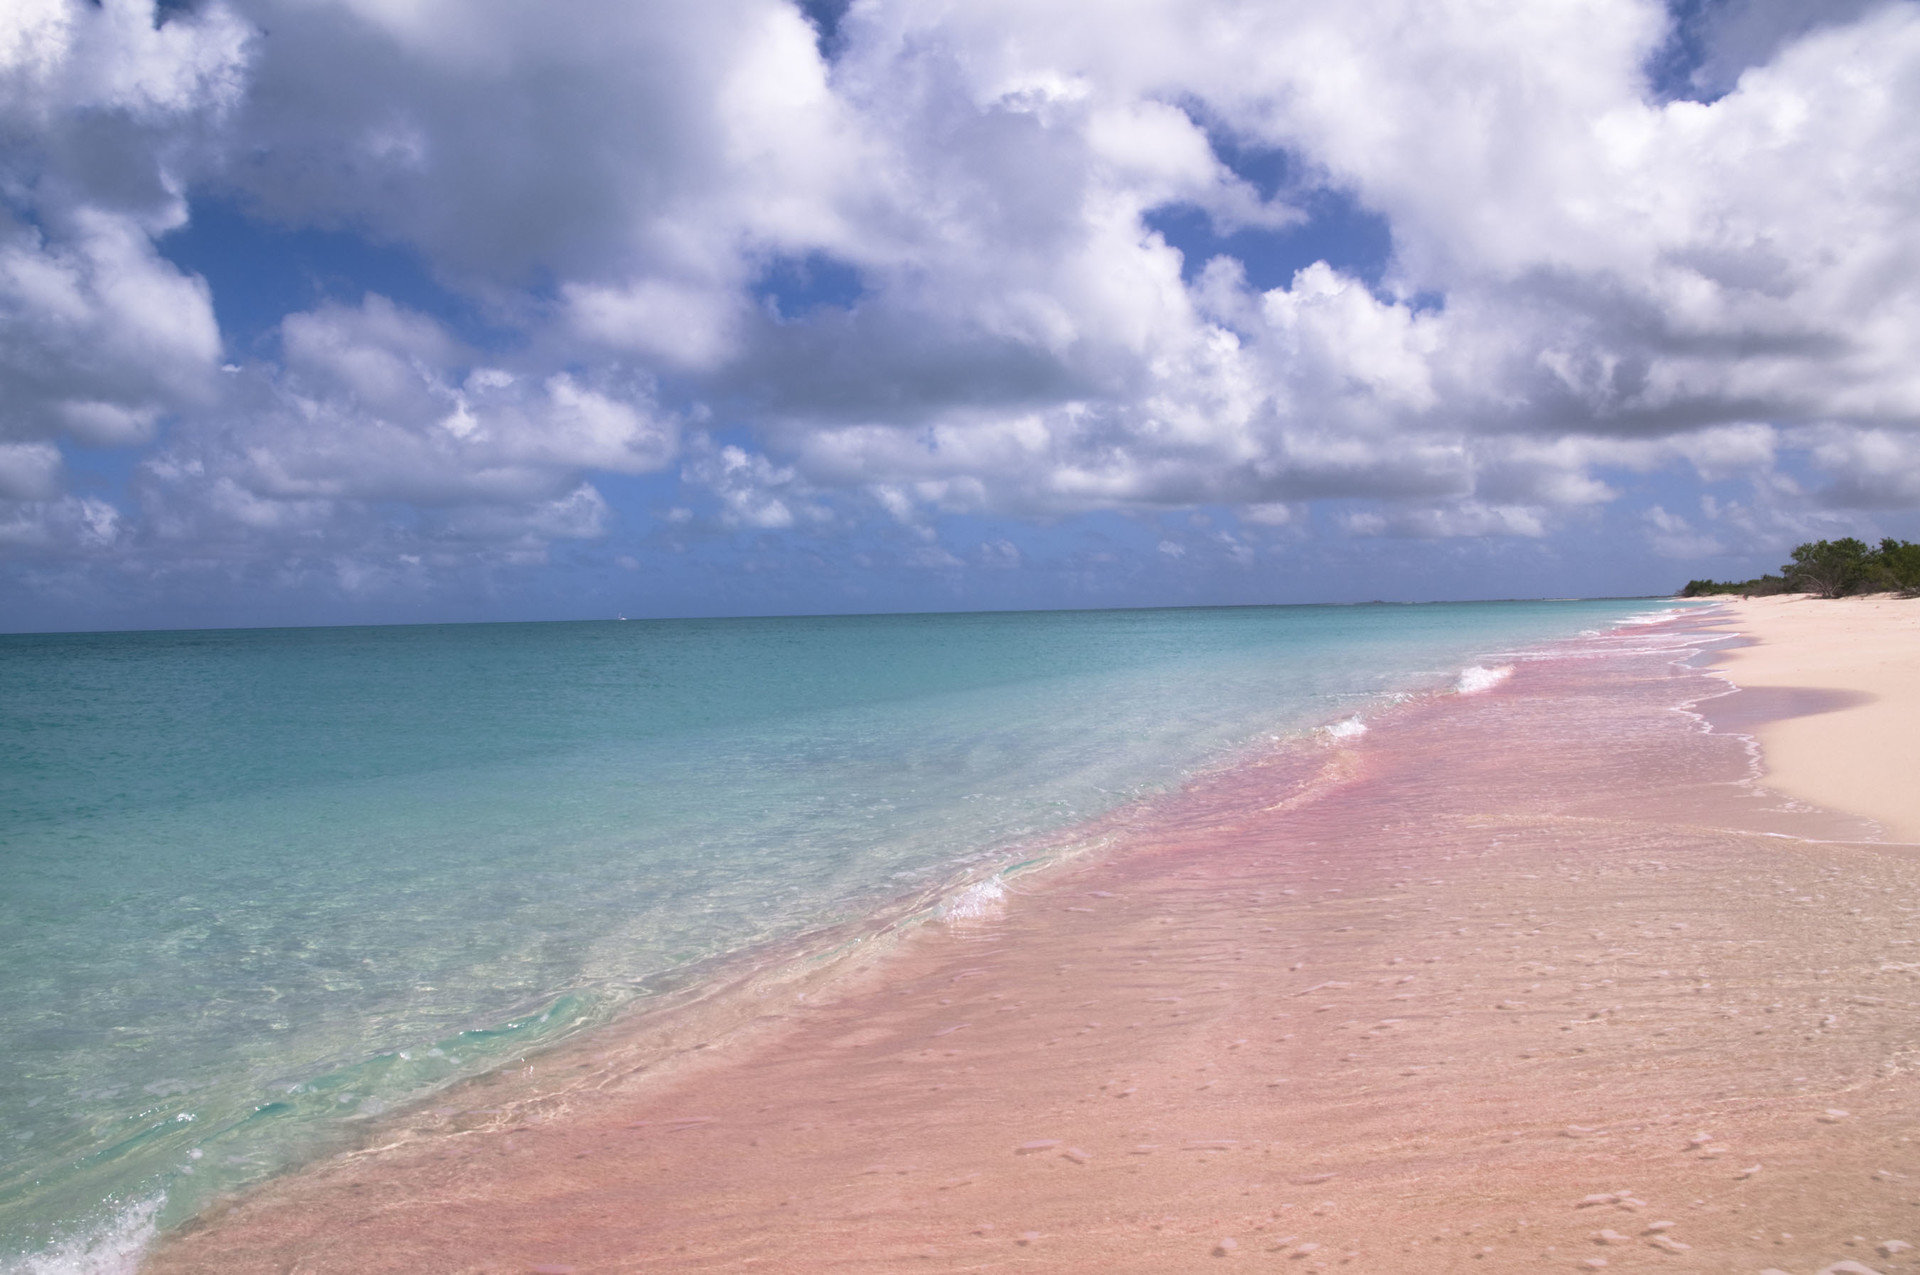 Offbeat Trip Ideas sky outdoor water Beach Sea shore body of water horizon Nature Ocean Coast cloud wind wave vacation wave sand caribbean clouds cape bay cloudy day sandy